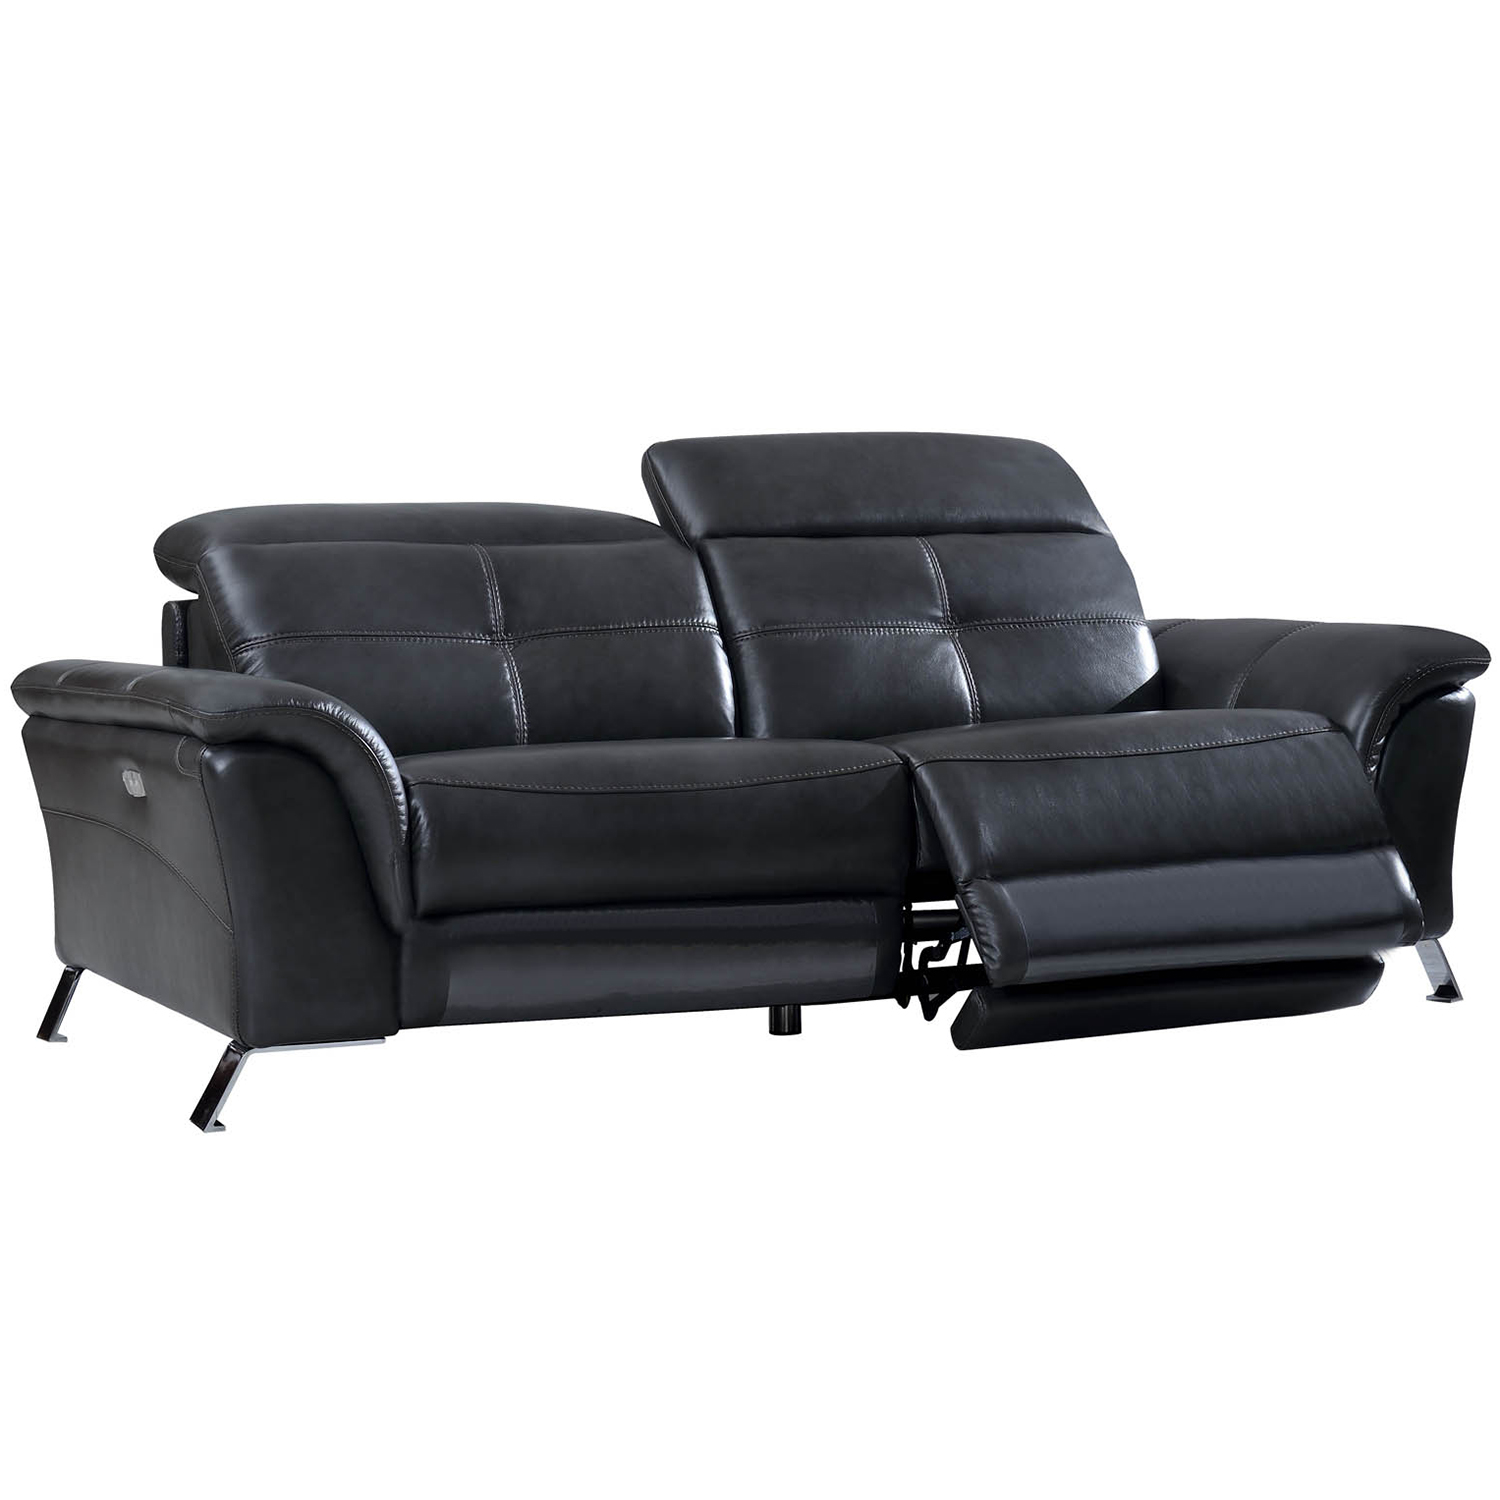 2619 Dual Power Reclining Sofa In Top Grain Dark Grey Leather By Esf Furniture Imports